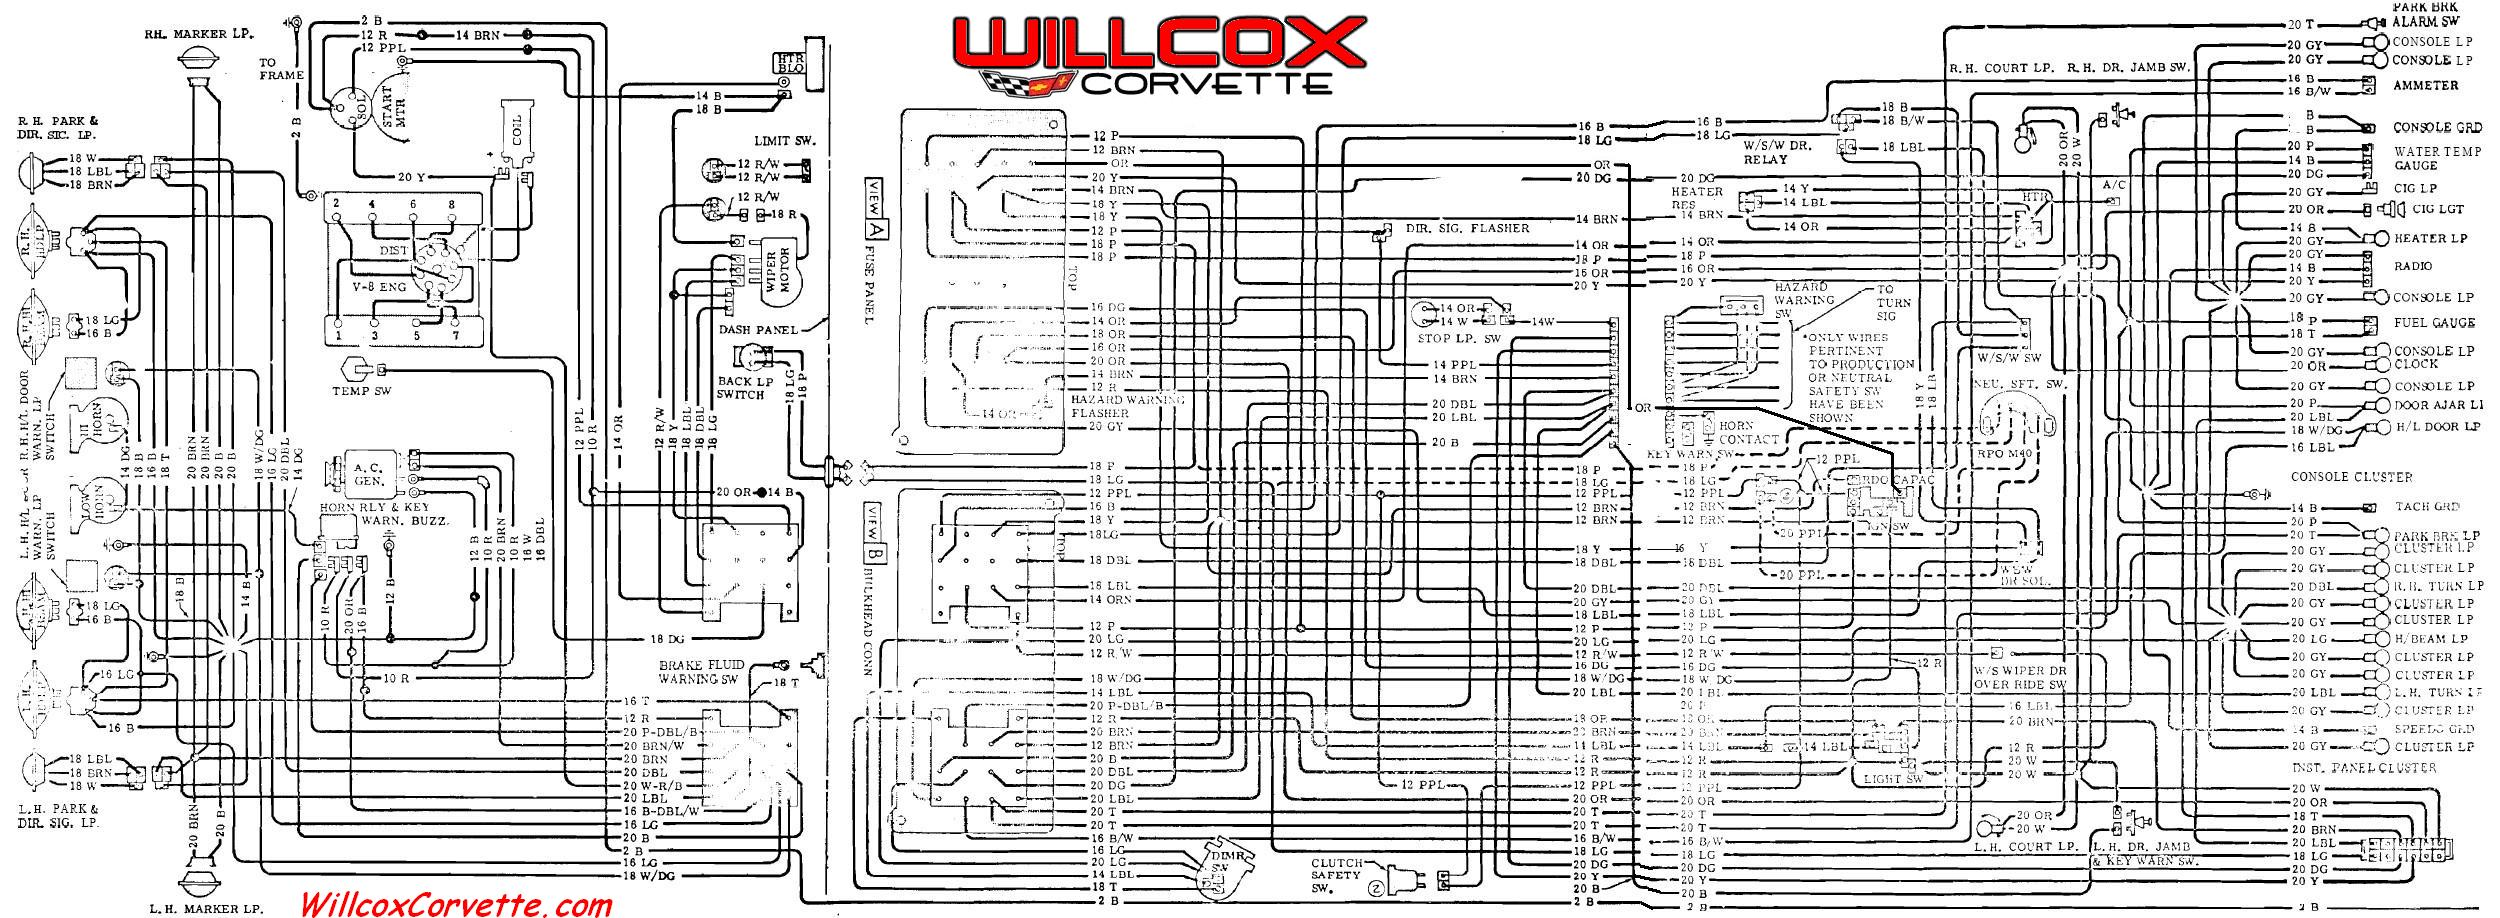 1987 Corvette Wiring Schematic Another Blog About Diagram Engine All Image And Alternator 1968